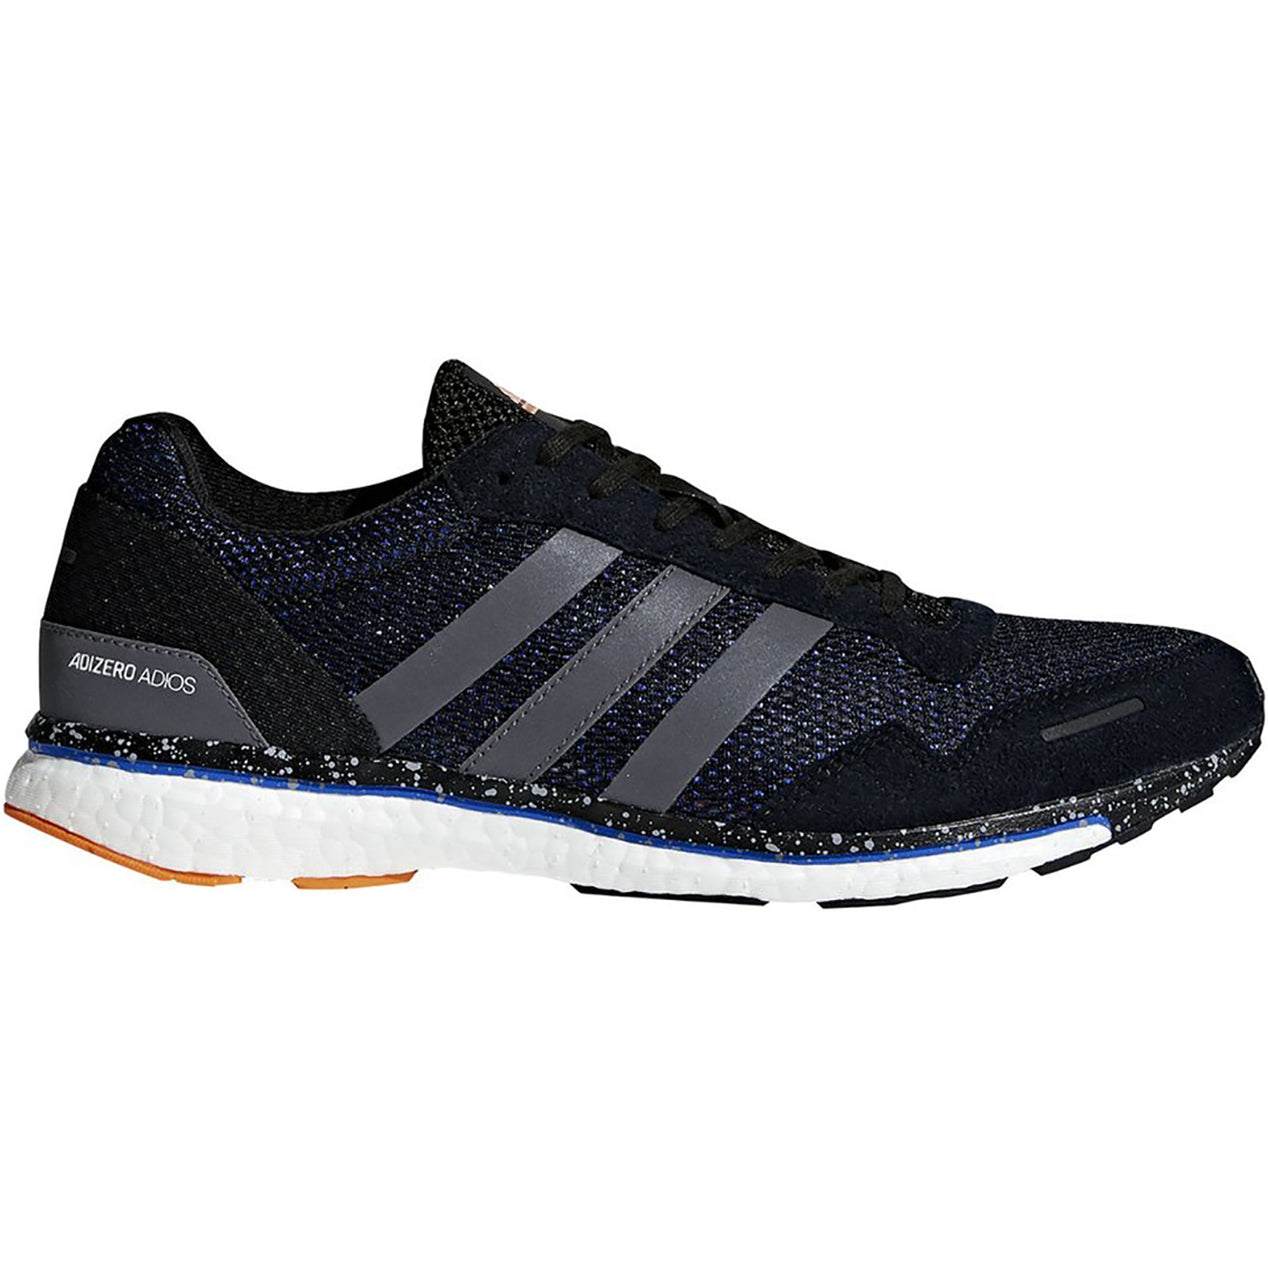 on sale e1dc4 e691b Adidas Men s Adizero Adios 3 Running Shoes